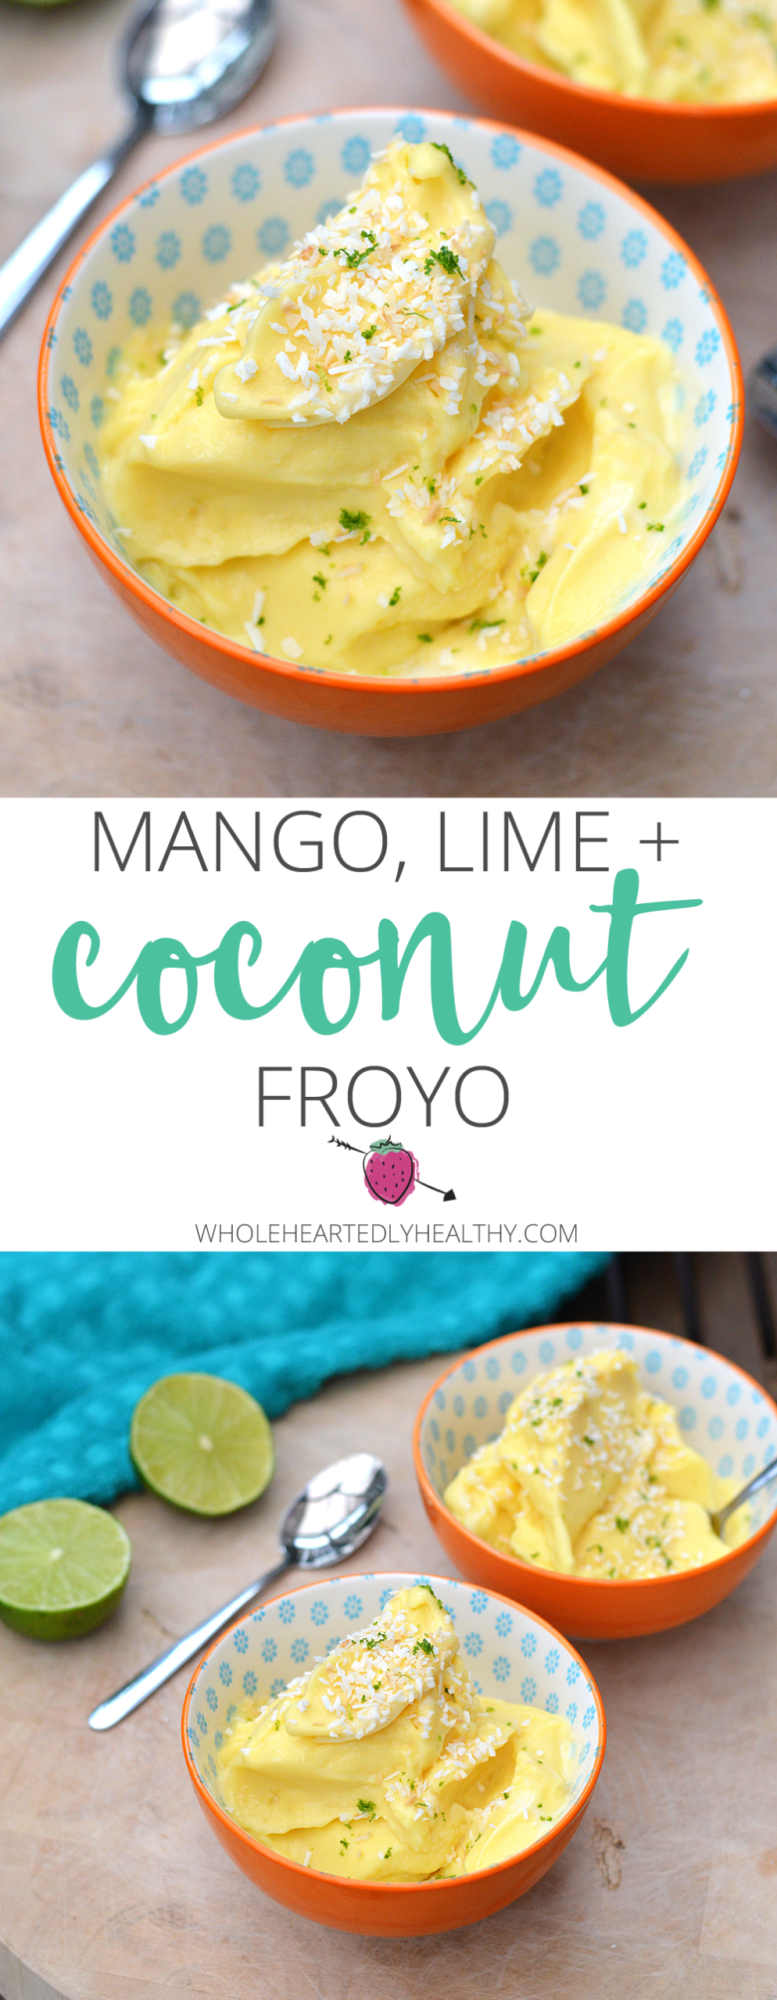 Mango lime and coconut froyo